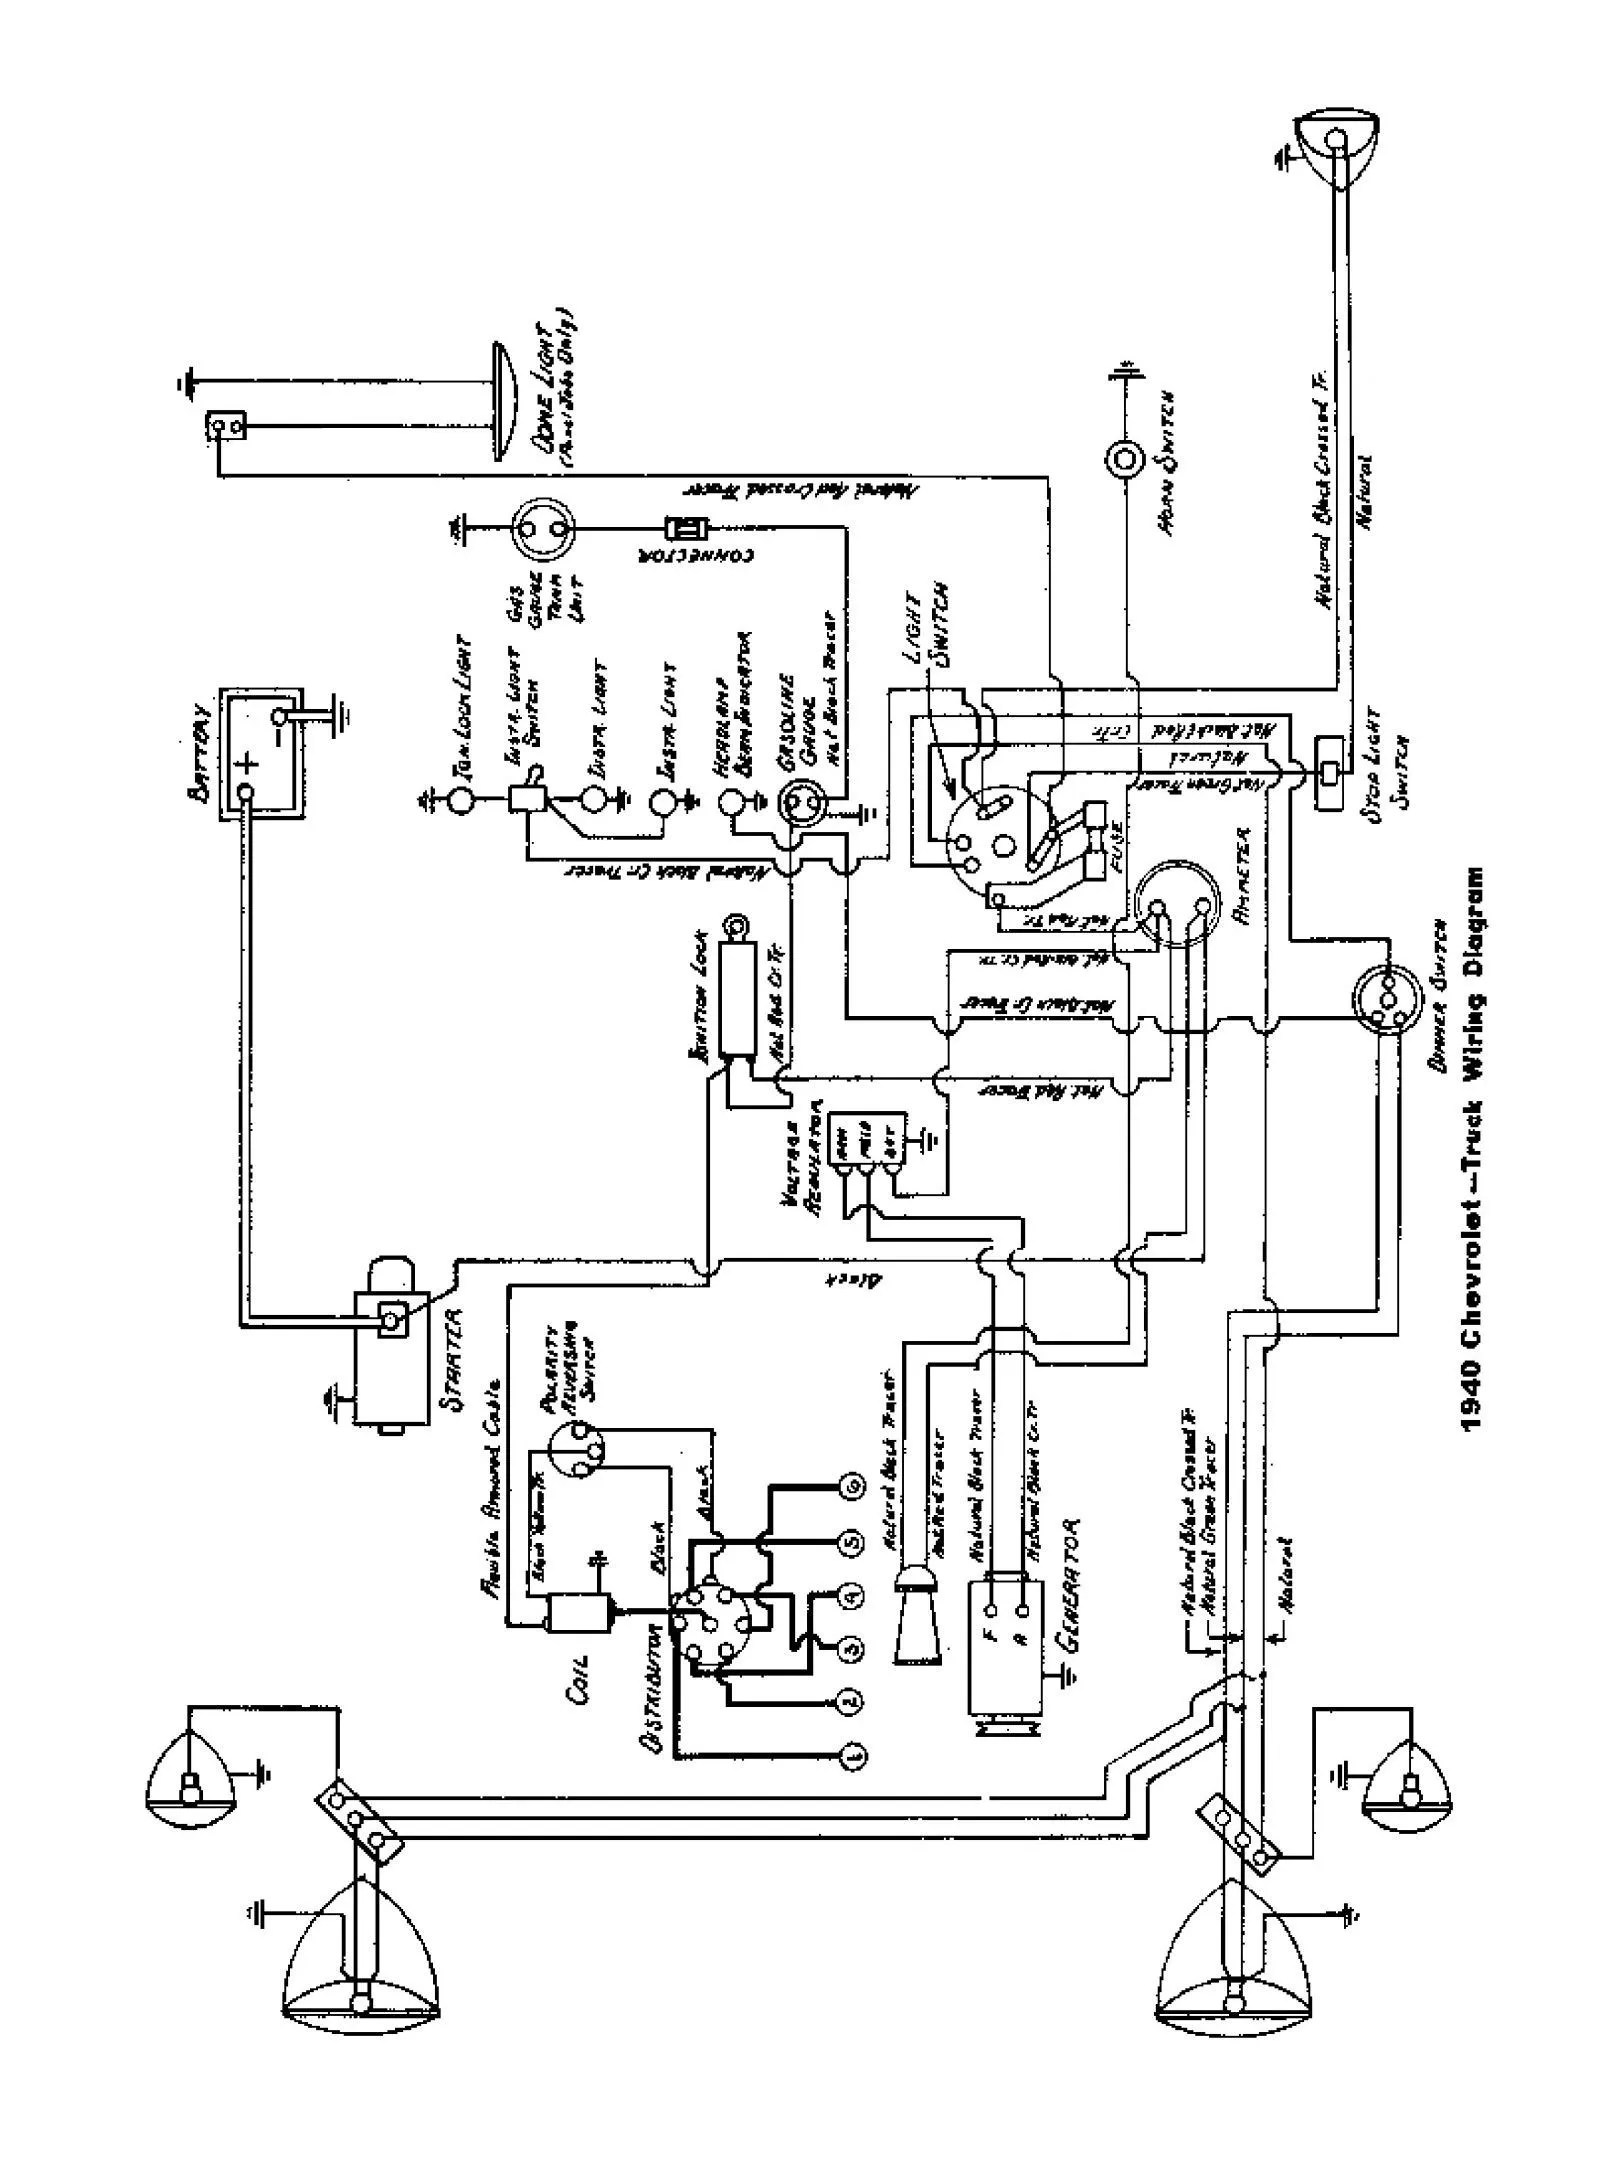 hight resolution of free chevrolet wiring diagram wiring diagram paper wiring diagram for 1974 chevrolet truck get free image about wiring